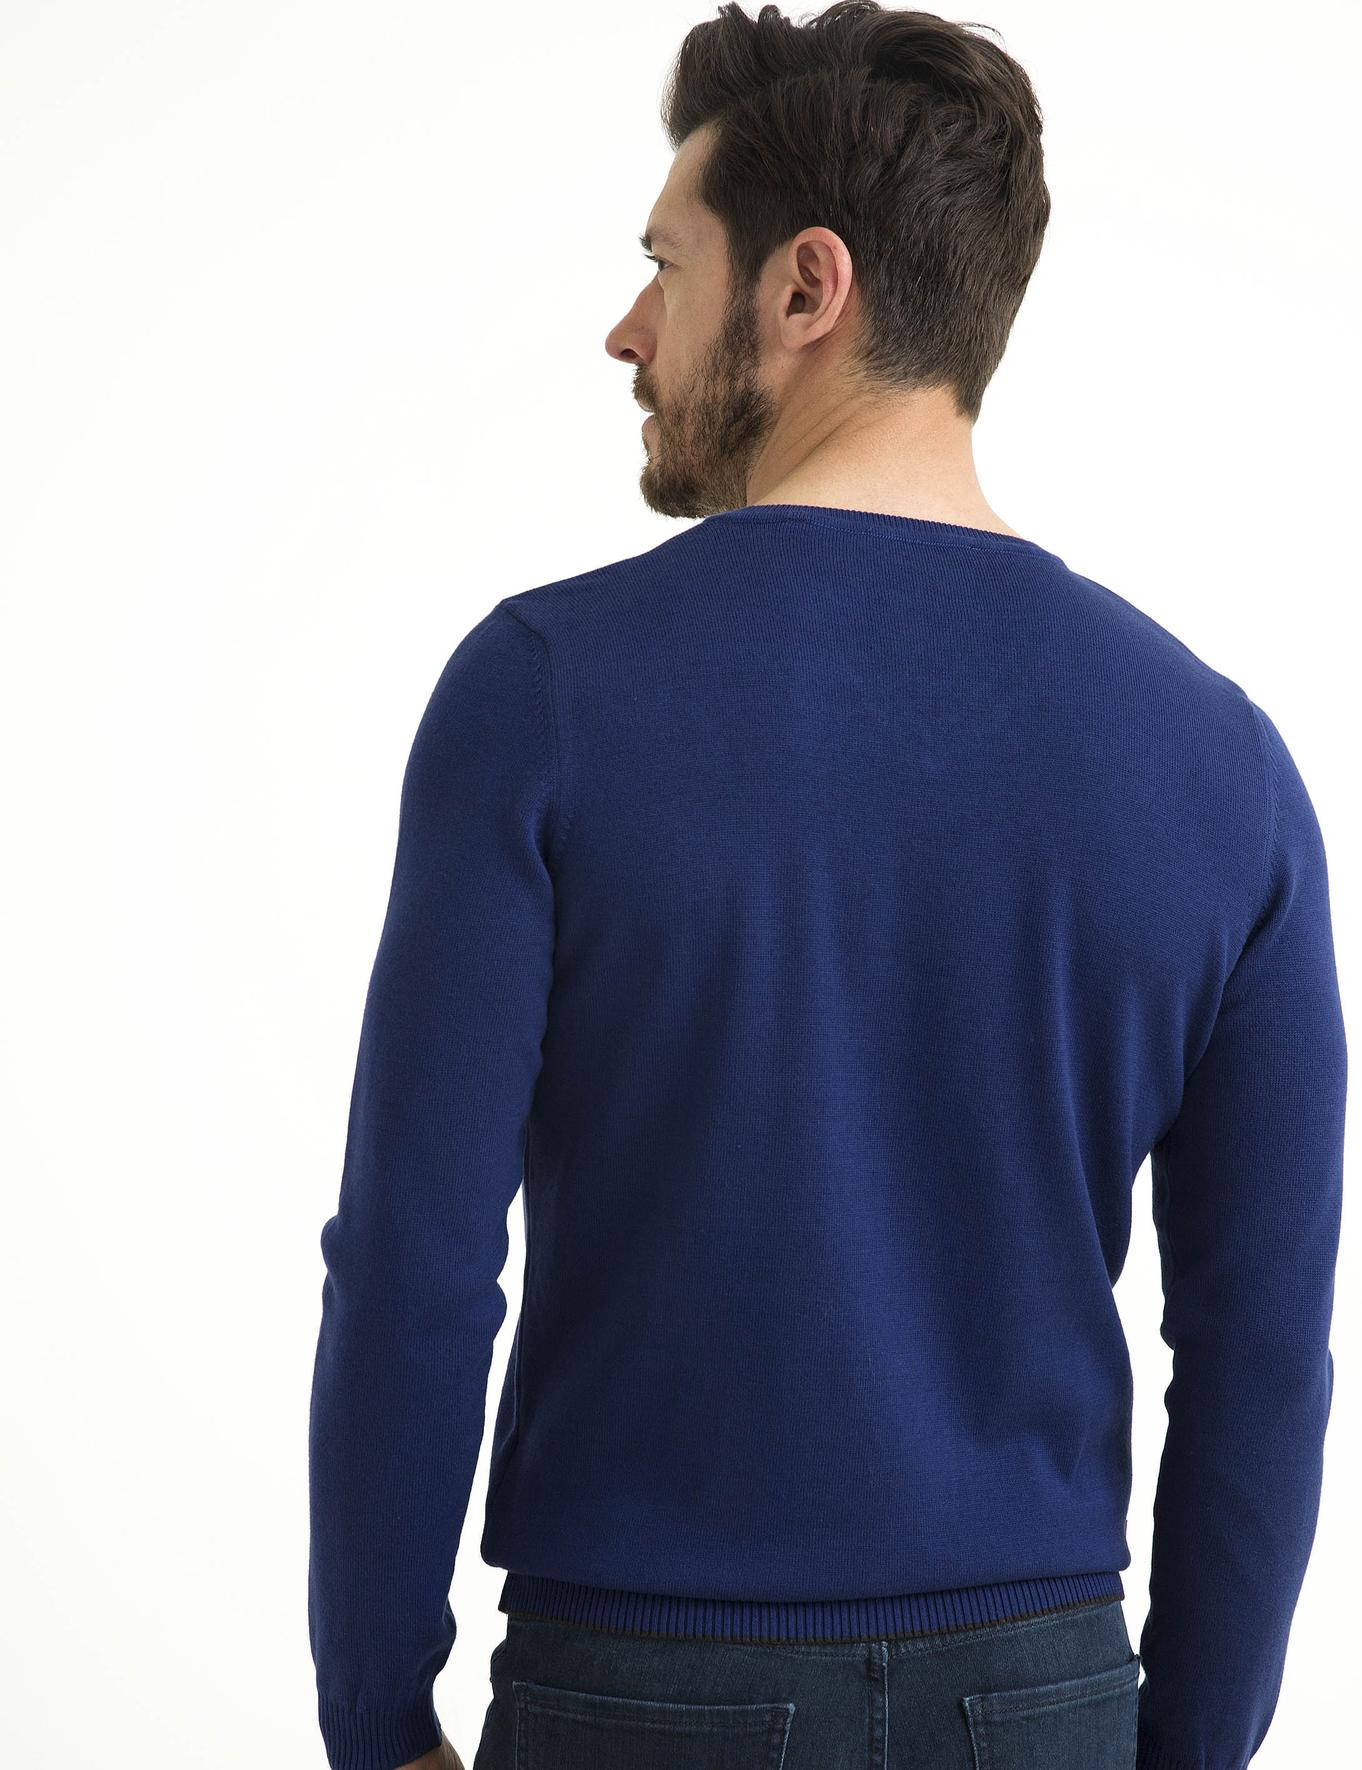 Mavi Slim Fit Basic Triko Kazak